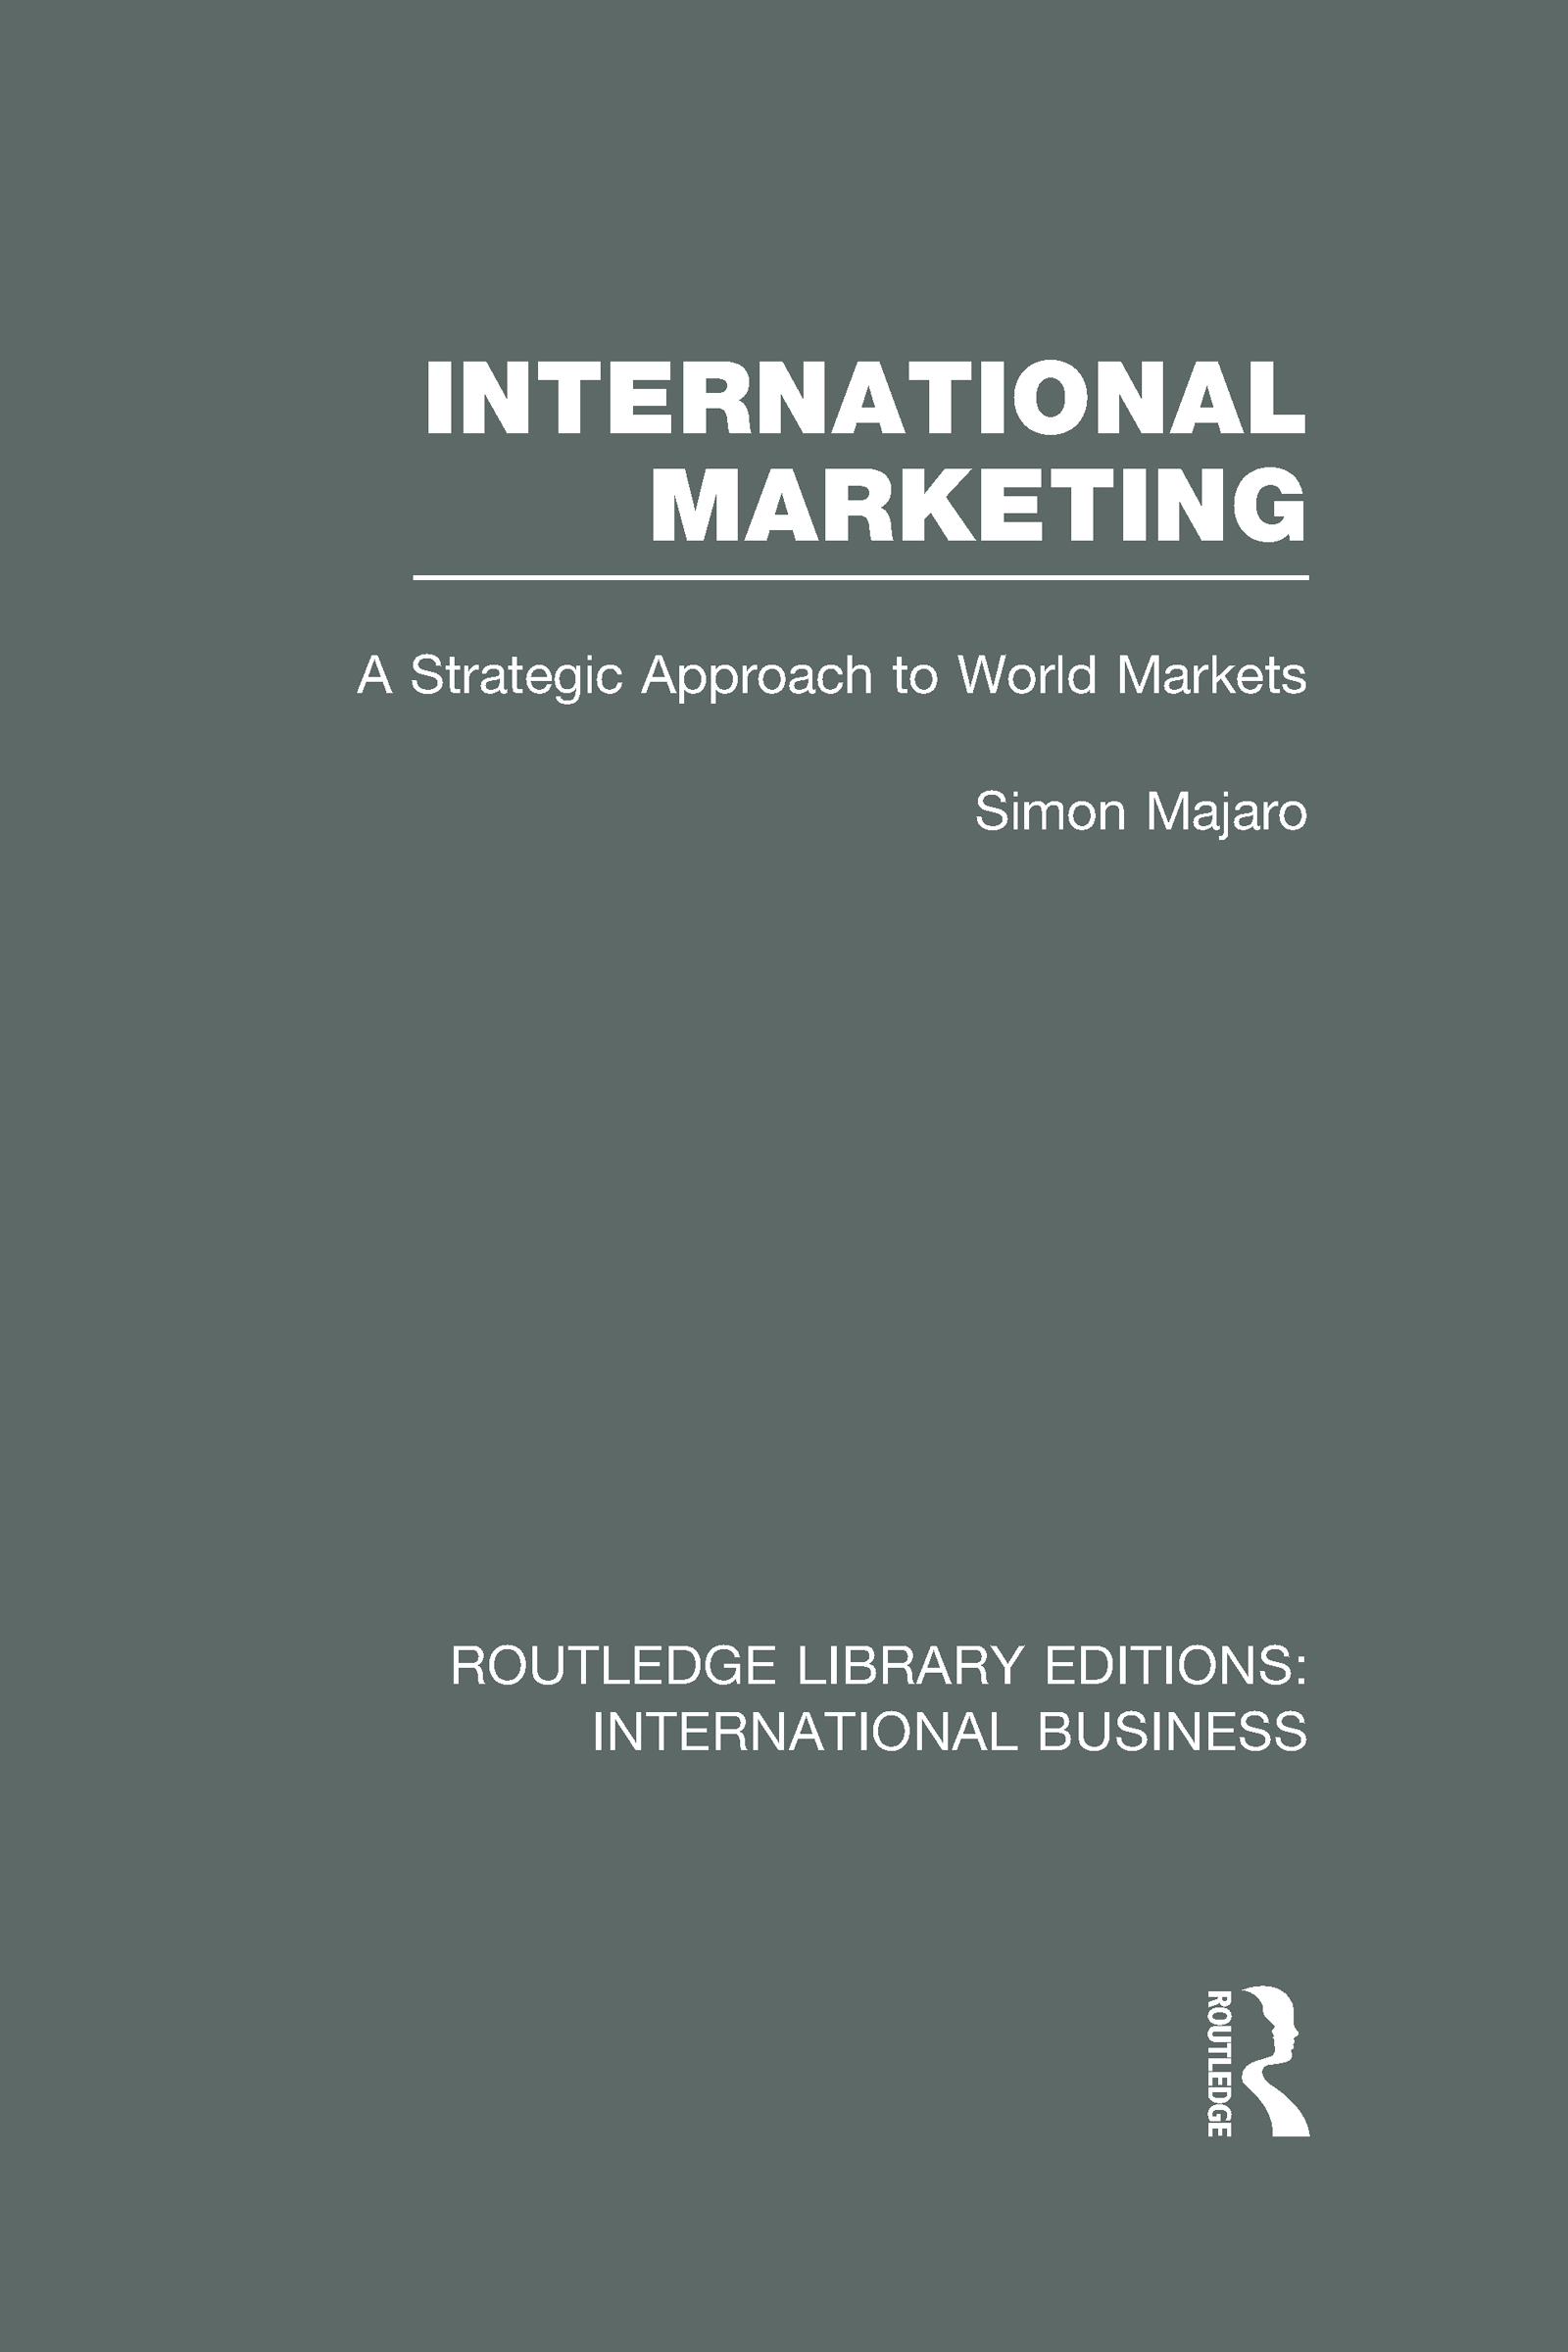 International Marketing (RLE International Business): A Strategic Approach to World Markets (Hardback) book cover